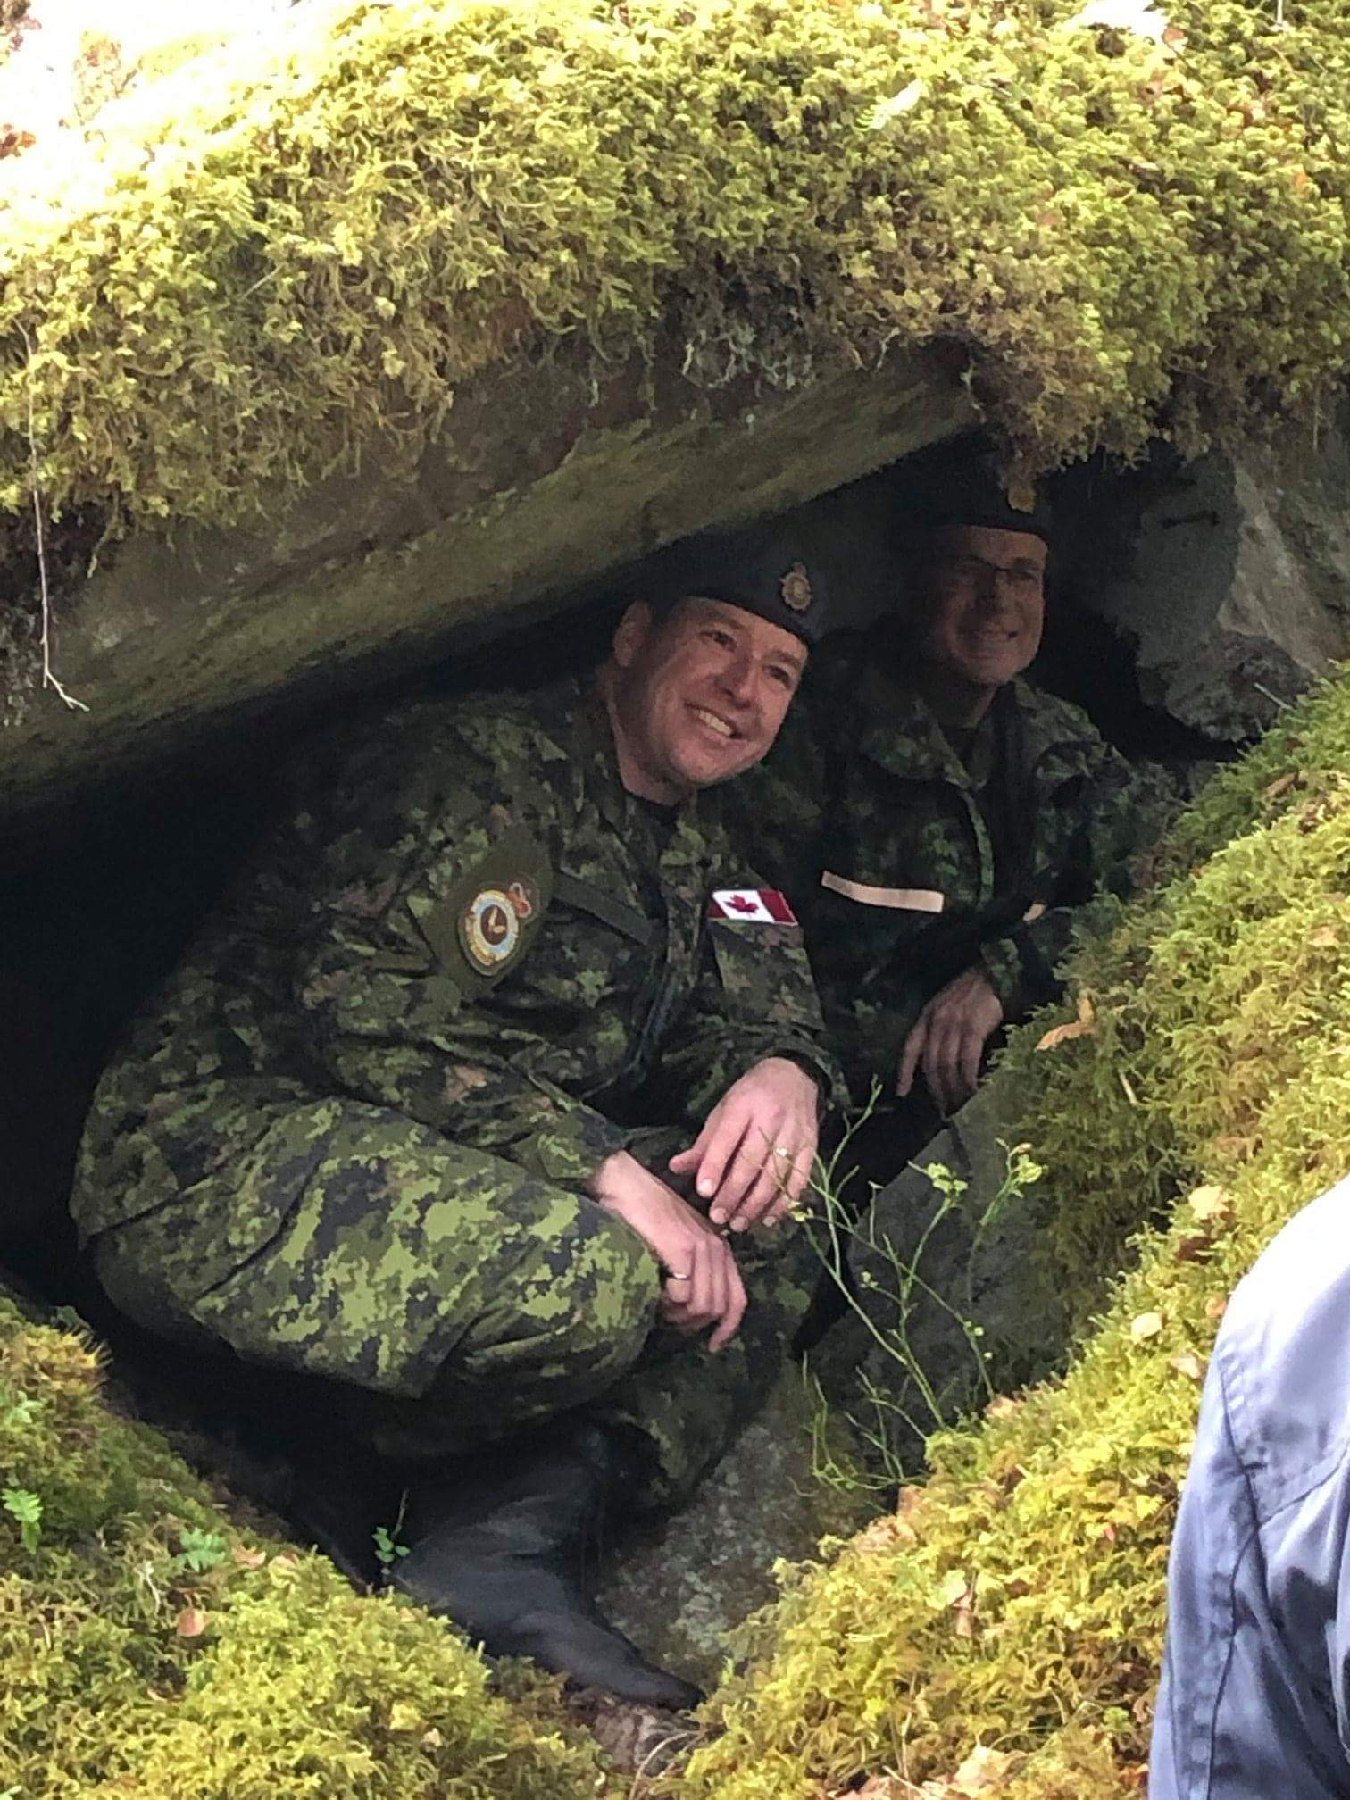 Lieutenant-Colonel Patrick Castonguay and Chief Warrant Officer Serge Harvey visit the small cave in which the aircrew took refuge after the forced landing. PHOTO: Submitted